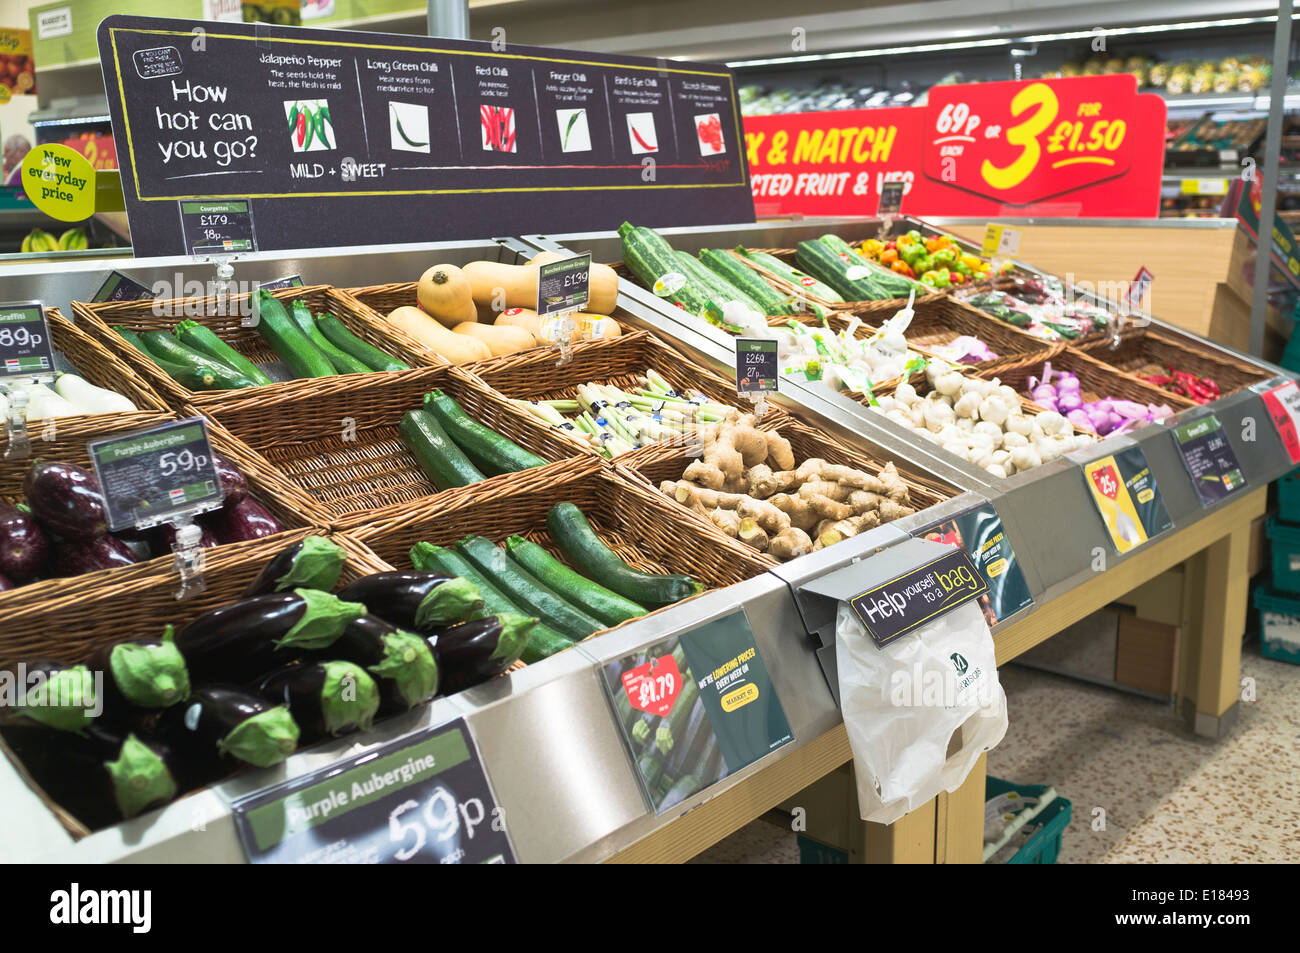 e grocery shopping in the uk role Ethical shopping guide to supermarkets, from ethical consumer  (eia) and greenpeace uk have just announced they are conducting a survey of major uk grocery.